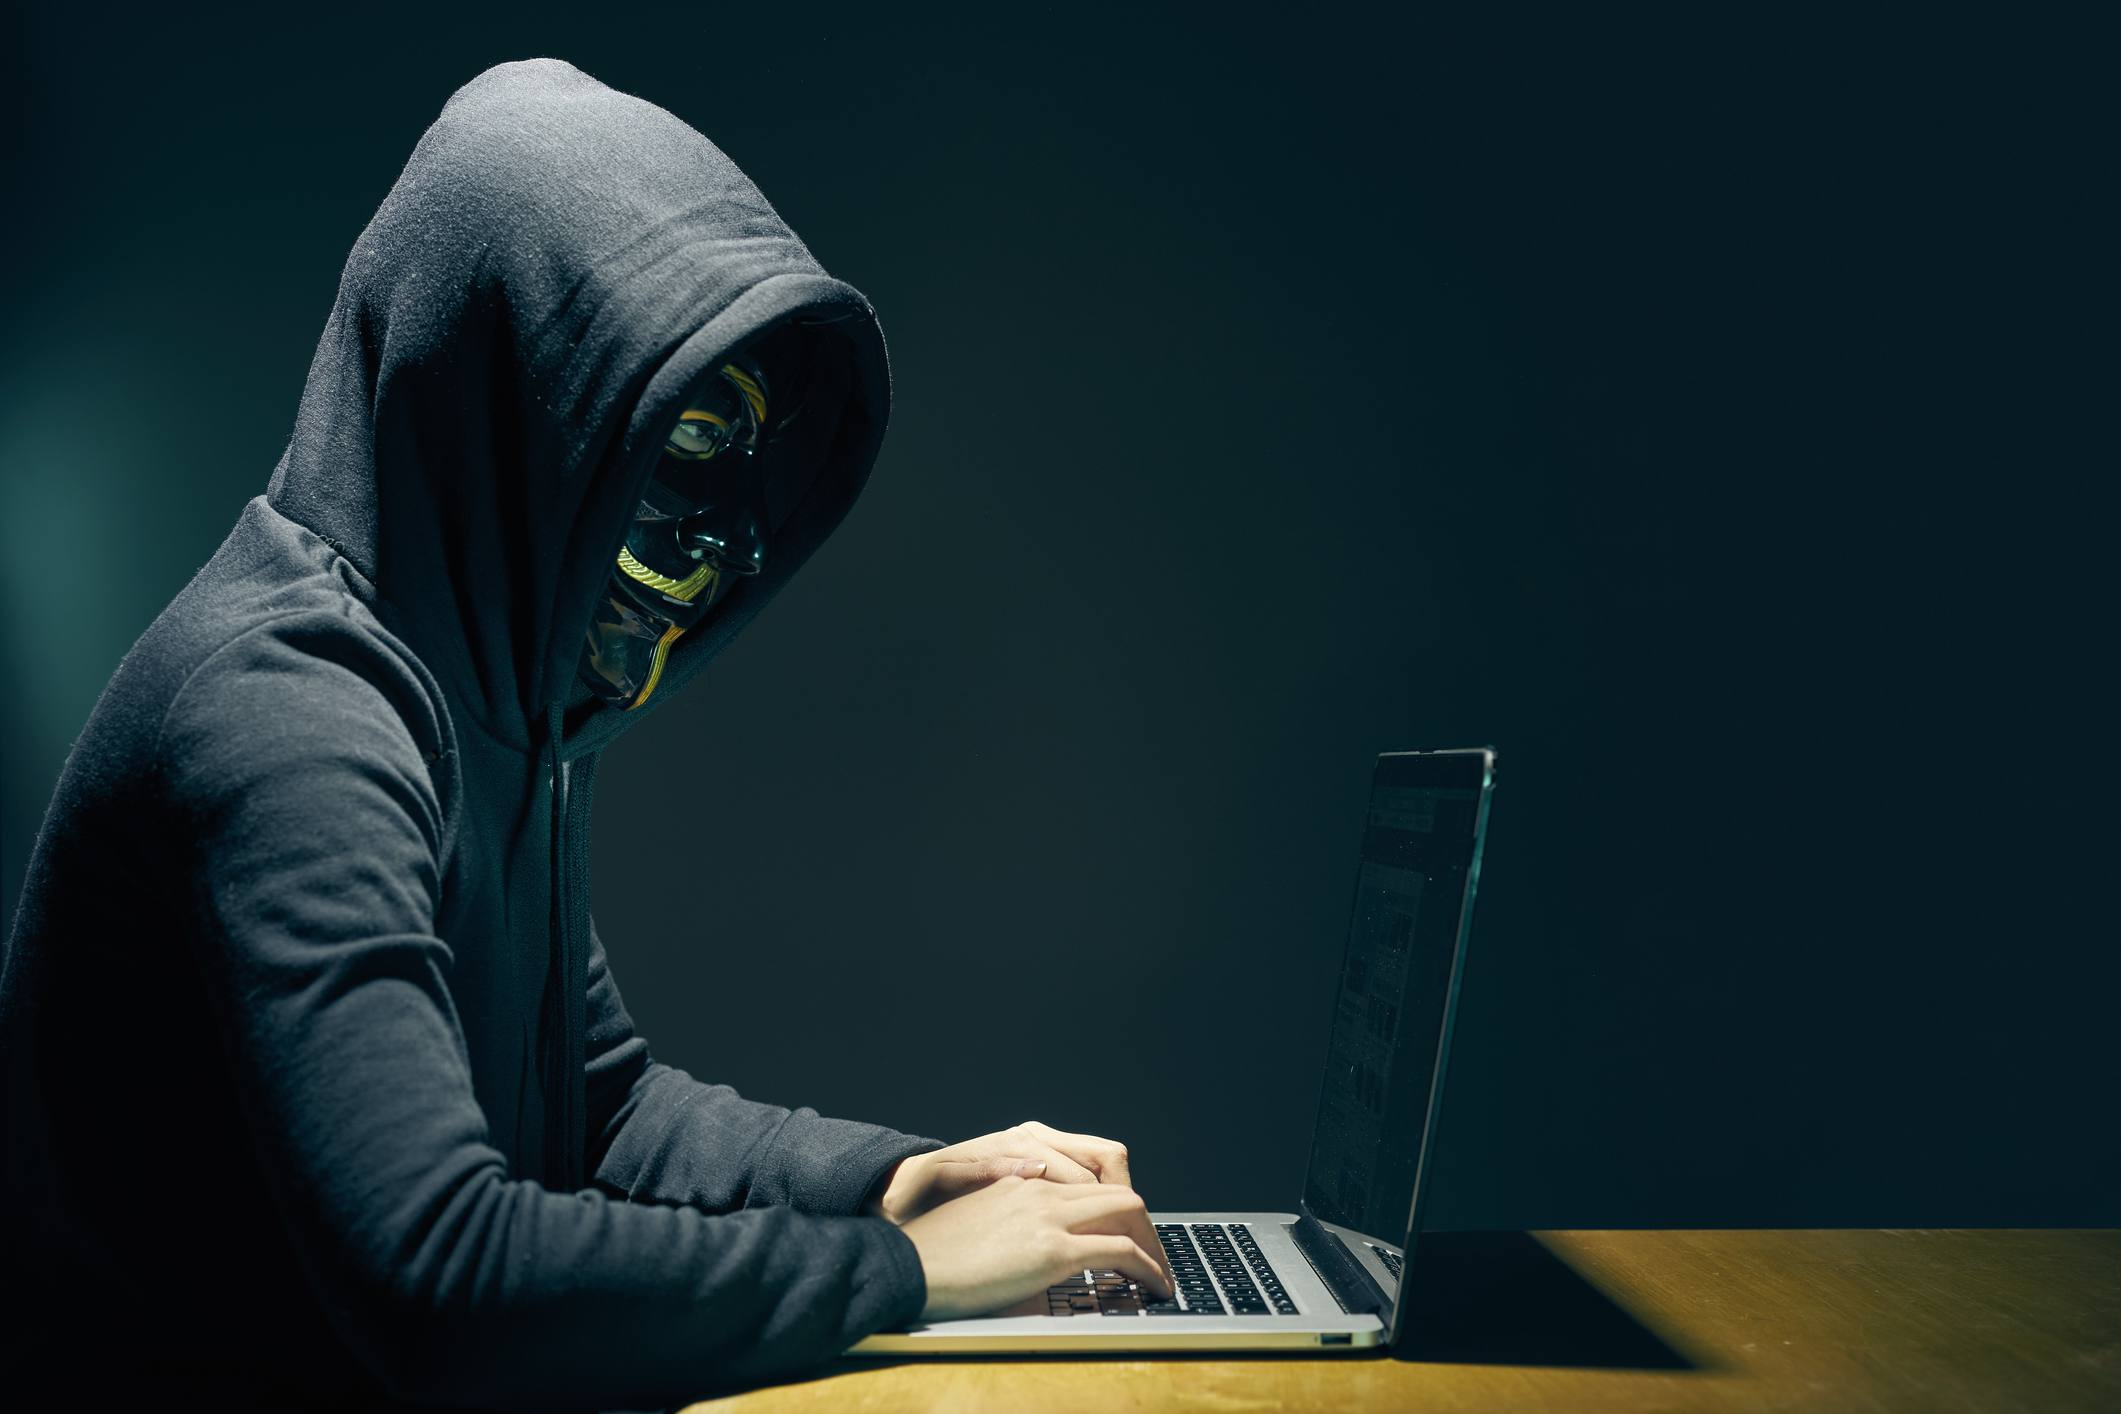 unethical hacking